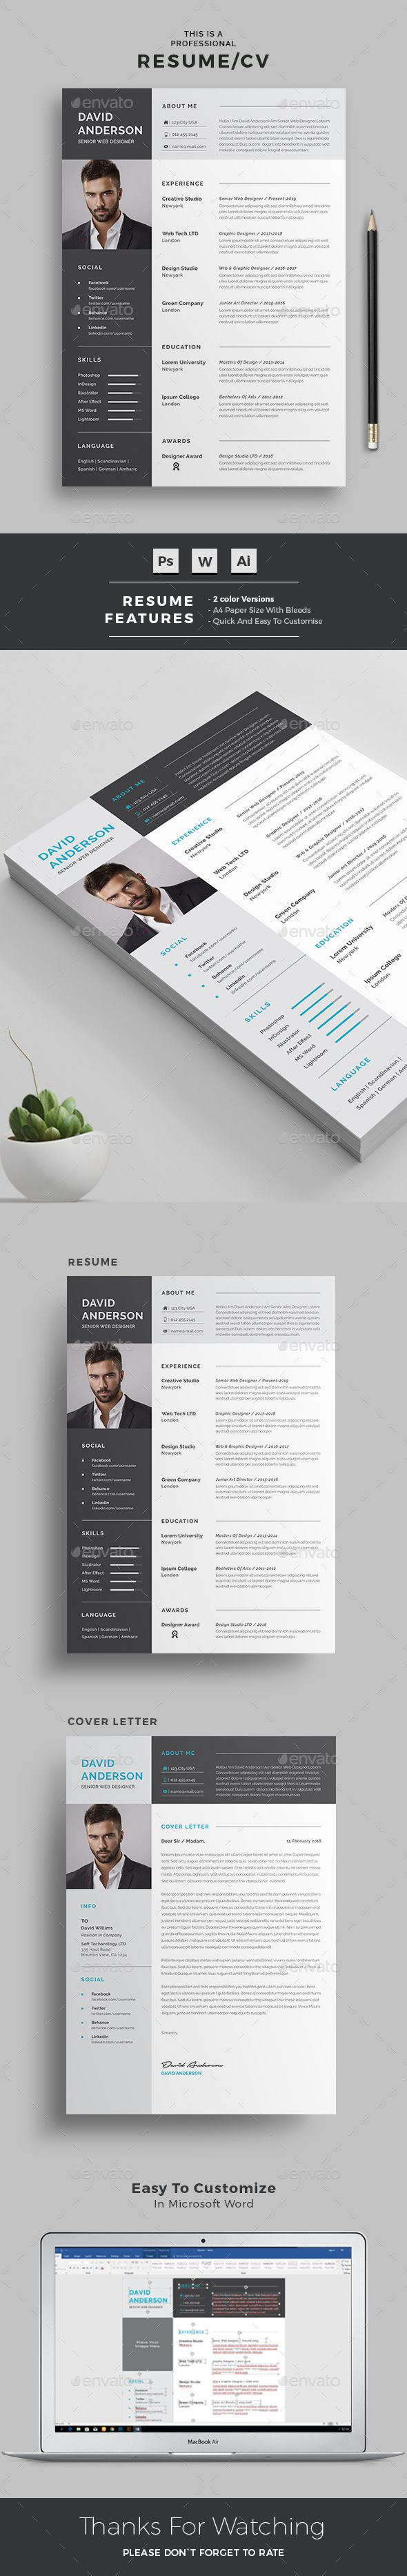 36 best Recruitment in Engineering images on Pinterest | Engineering ...